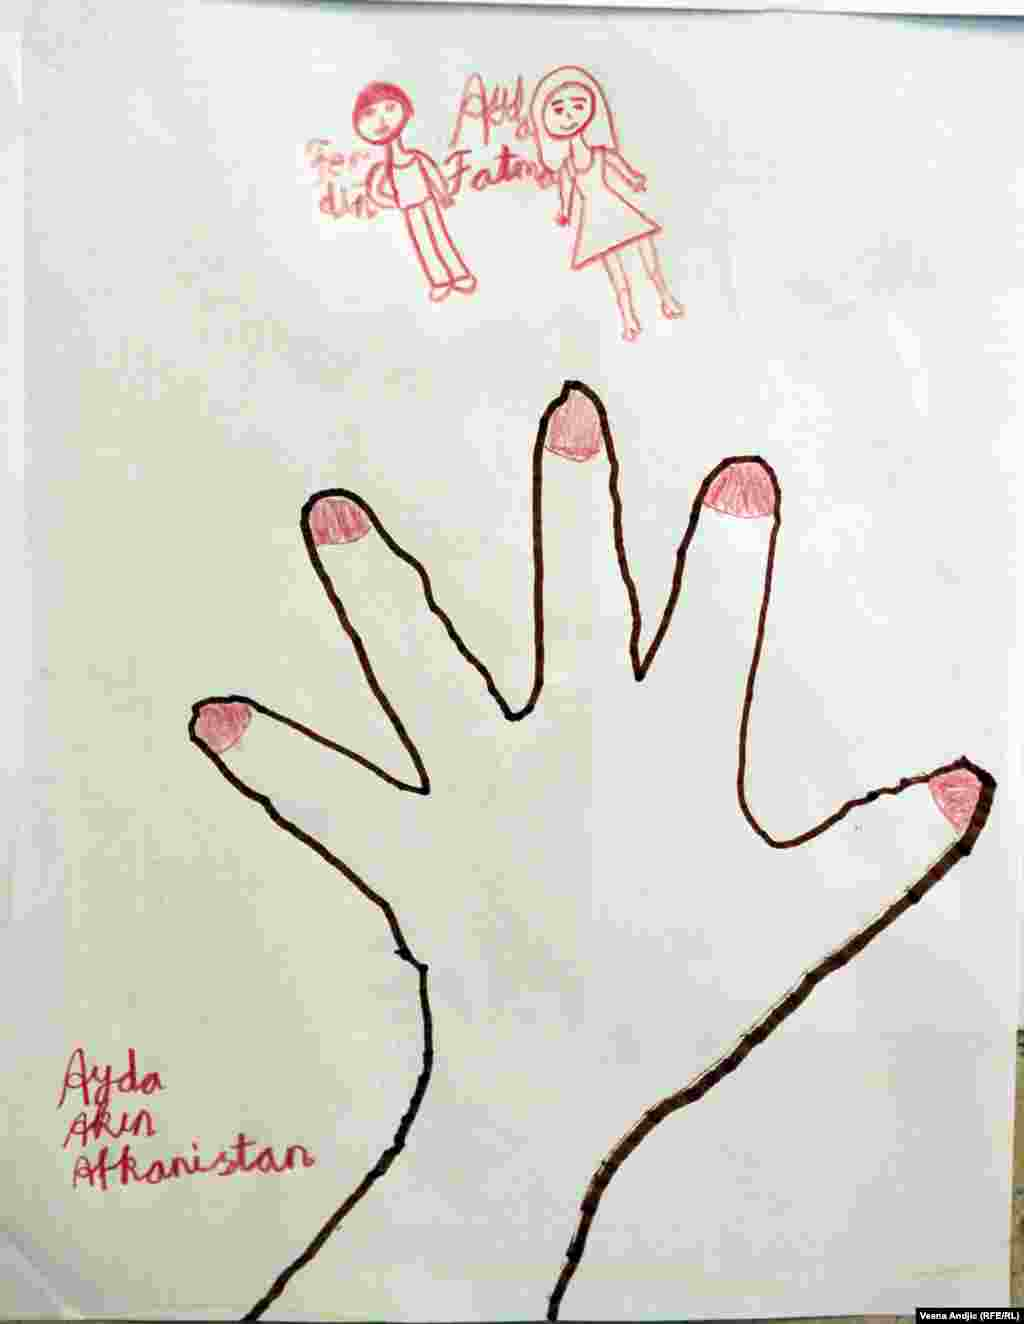 By Ayda, 8, from Afghanistan